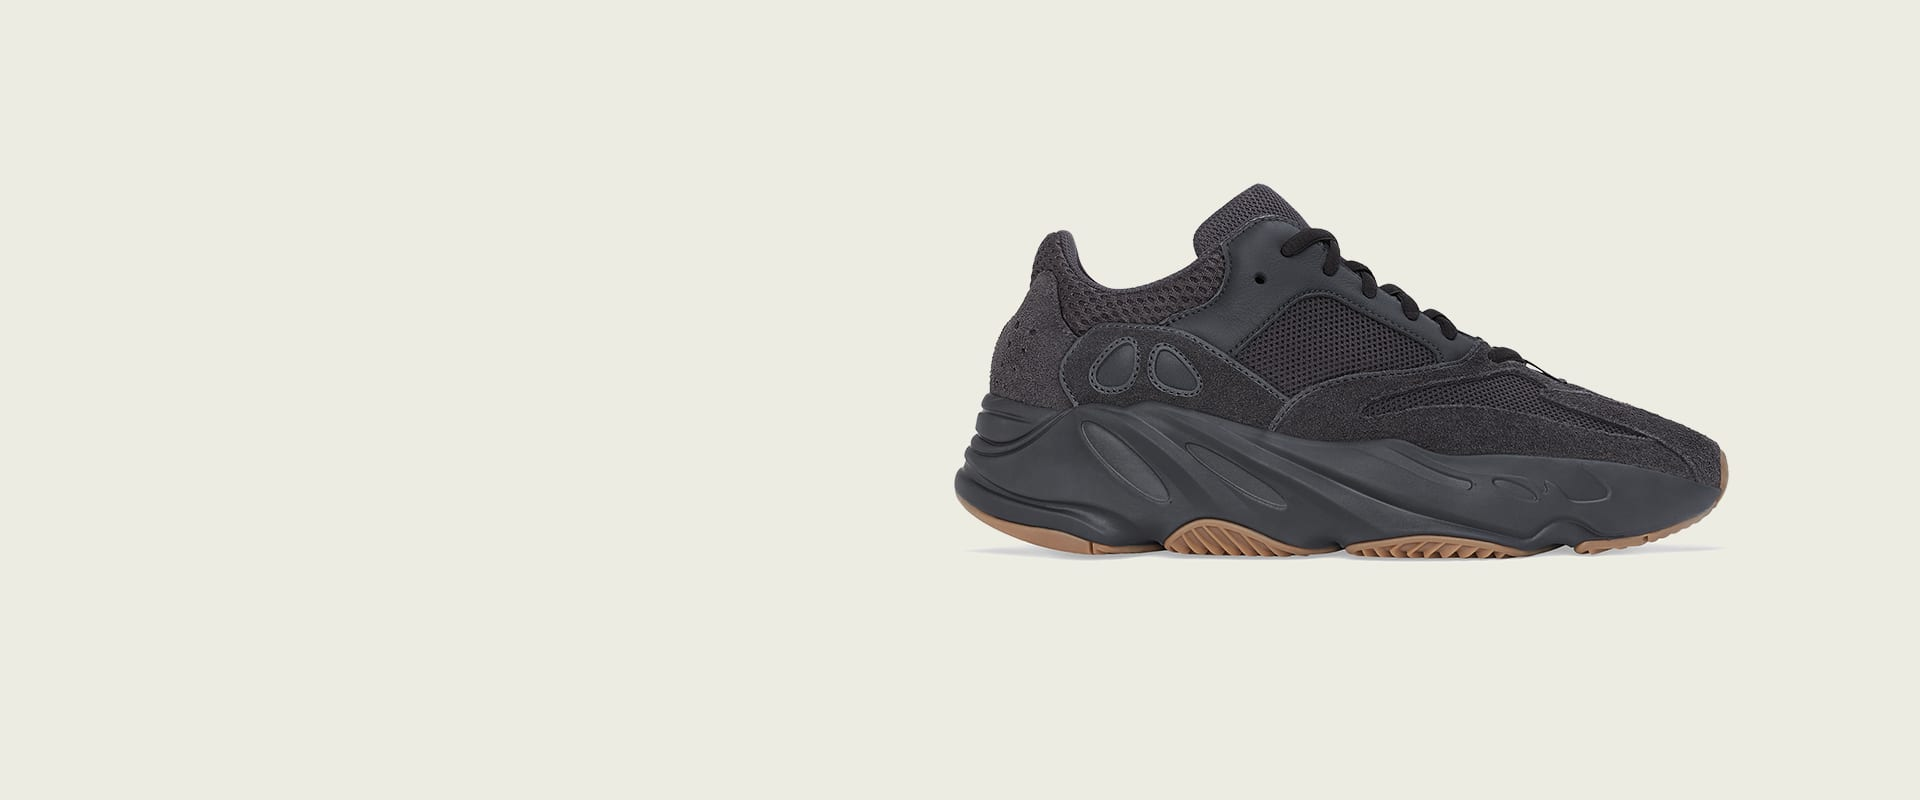 differently 5824b b4a17 YEEZY BOOST 700 UTILITY BLACK